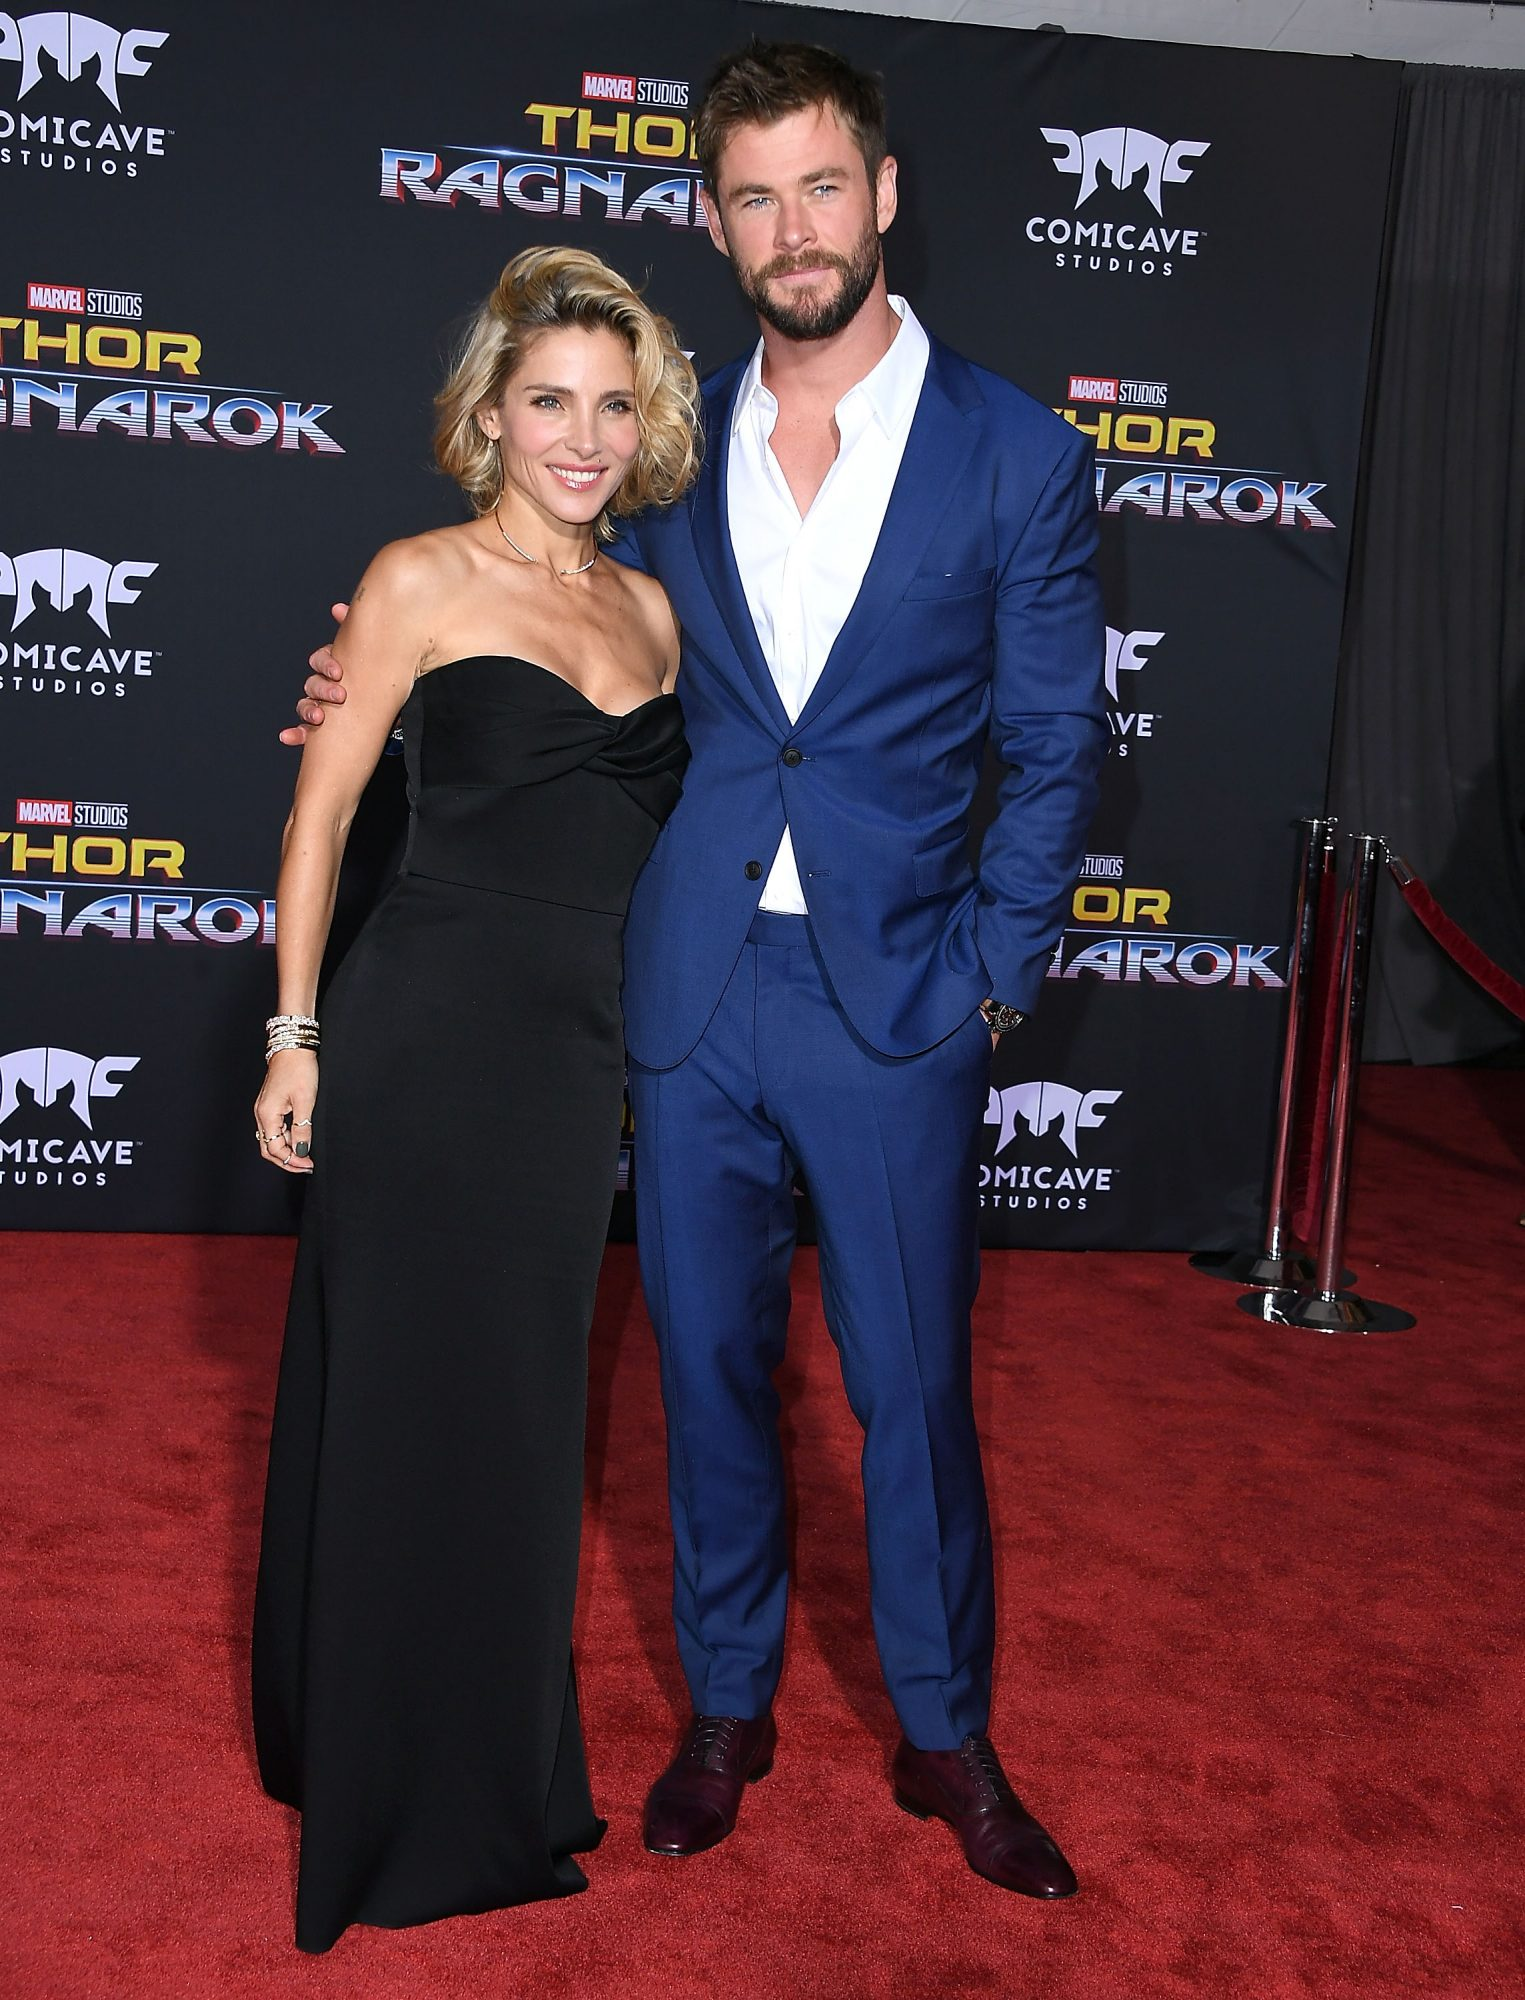 Chris Hemsworth Says Wife Elsa Pataky Is in Better Shape Than He Is at Thor: Ragnarok Premiere